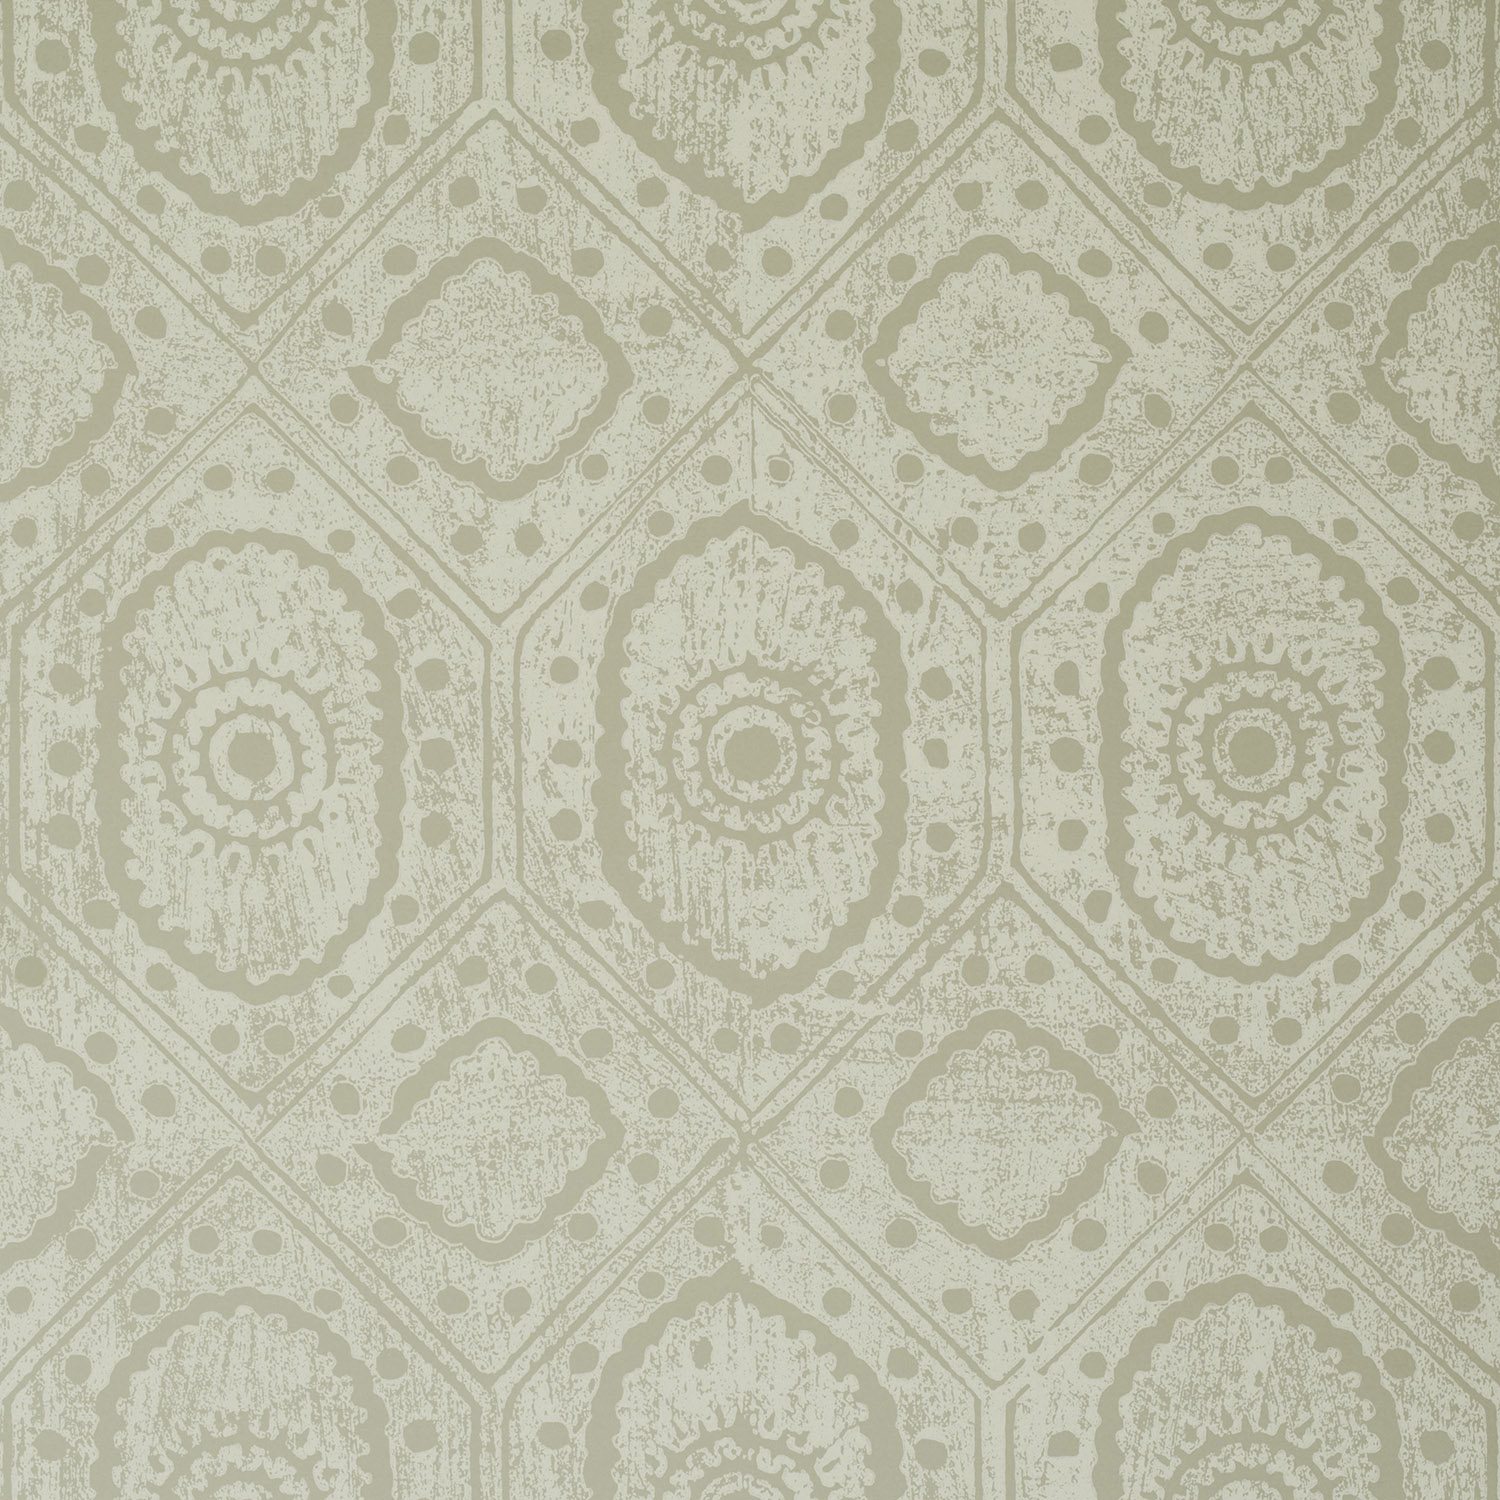 <p><strong>DIAMOND</strong>french grey 900-05<a href=/the-chatham-collection/diamond-french-grey-900-05>More →</a></p>